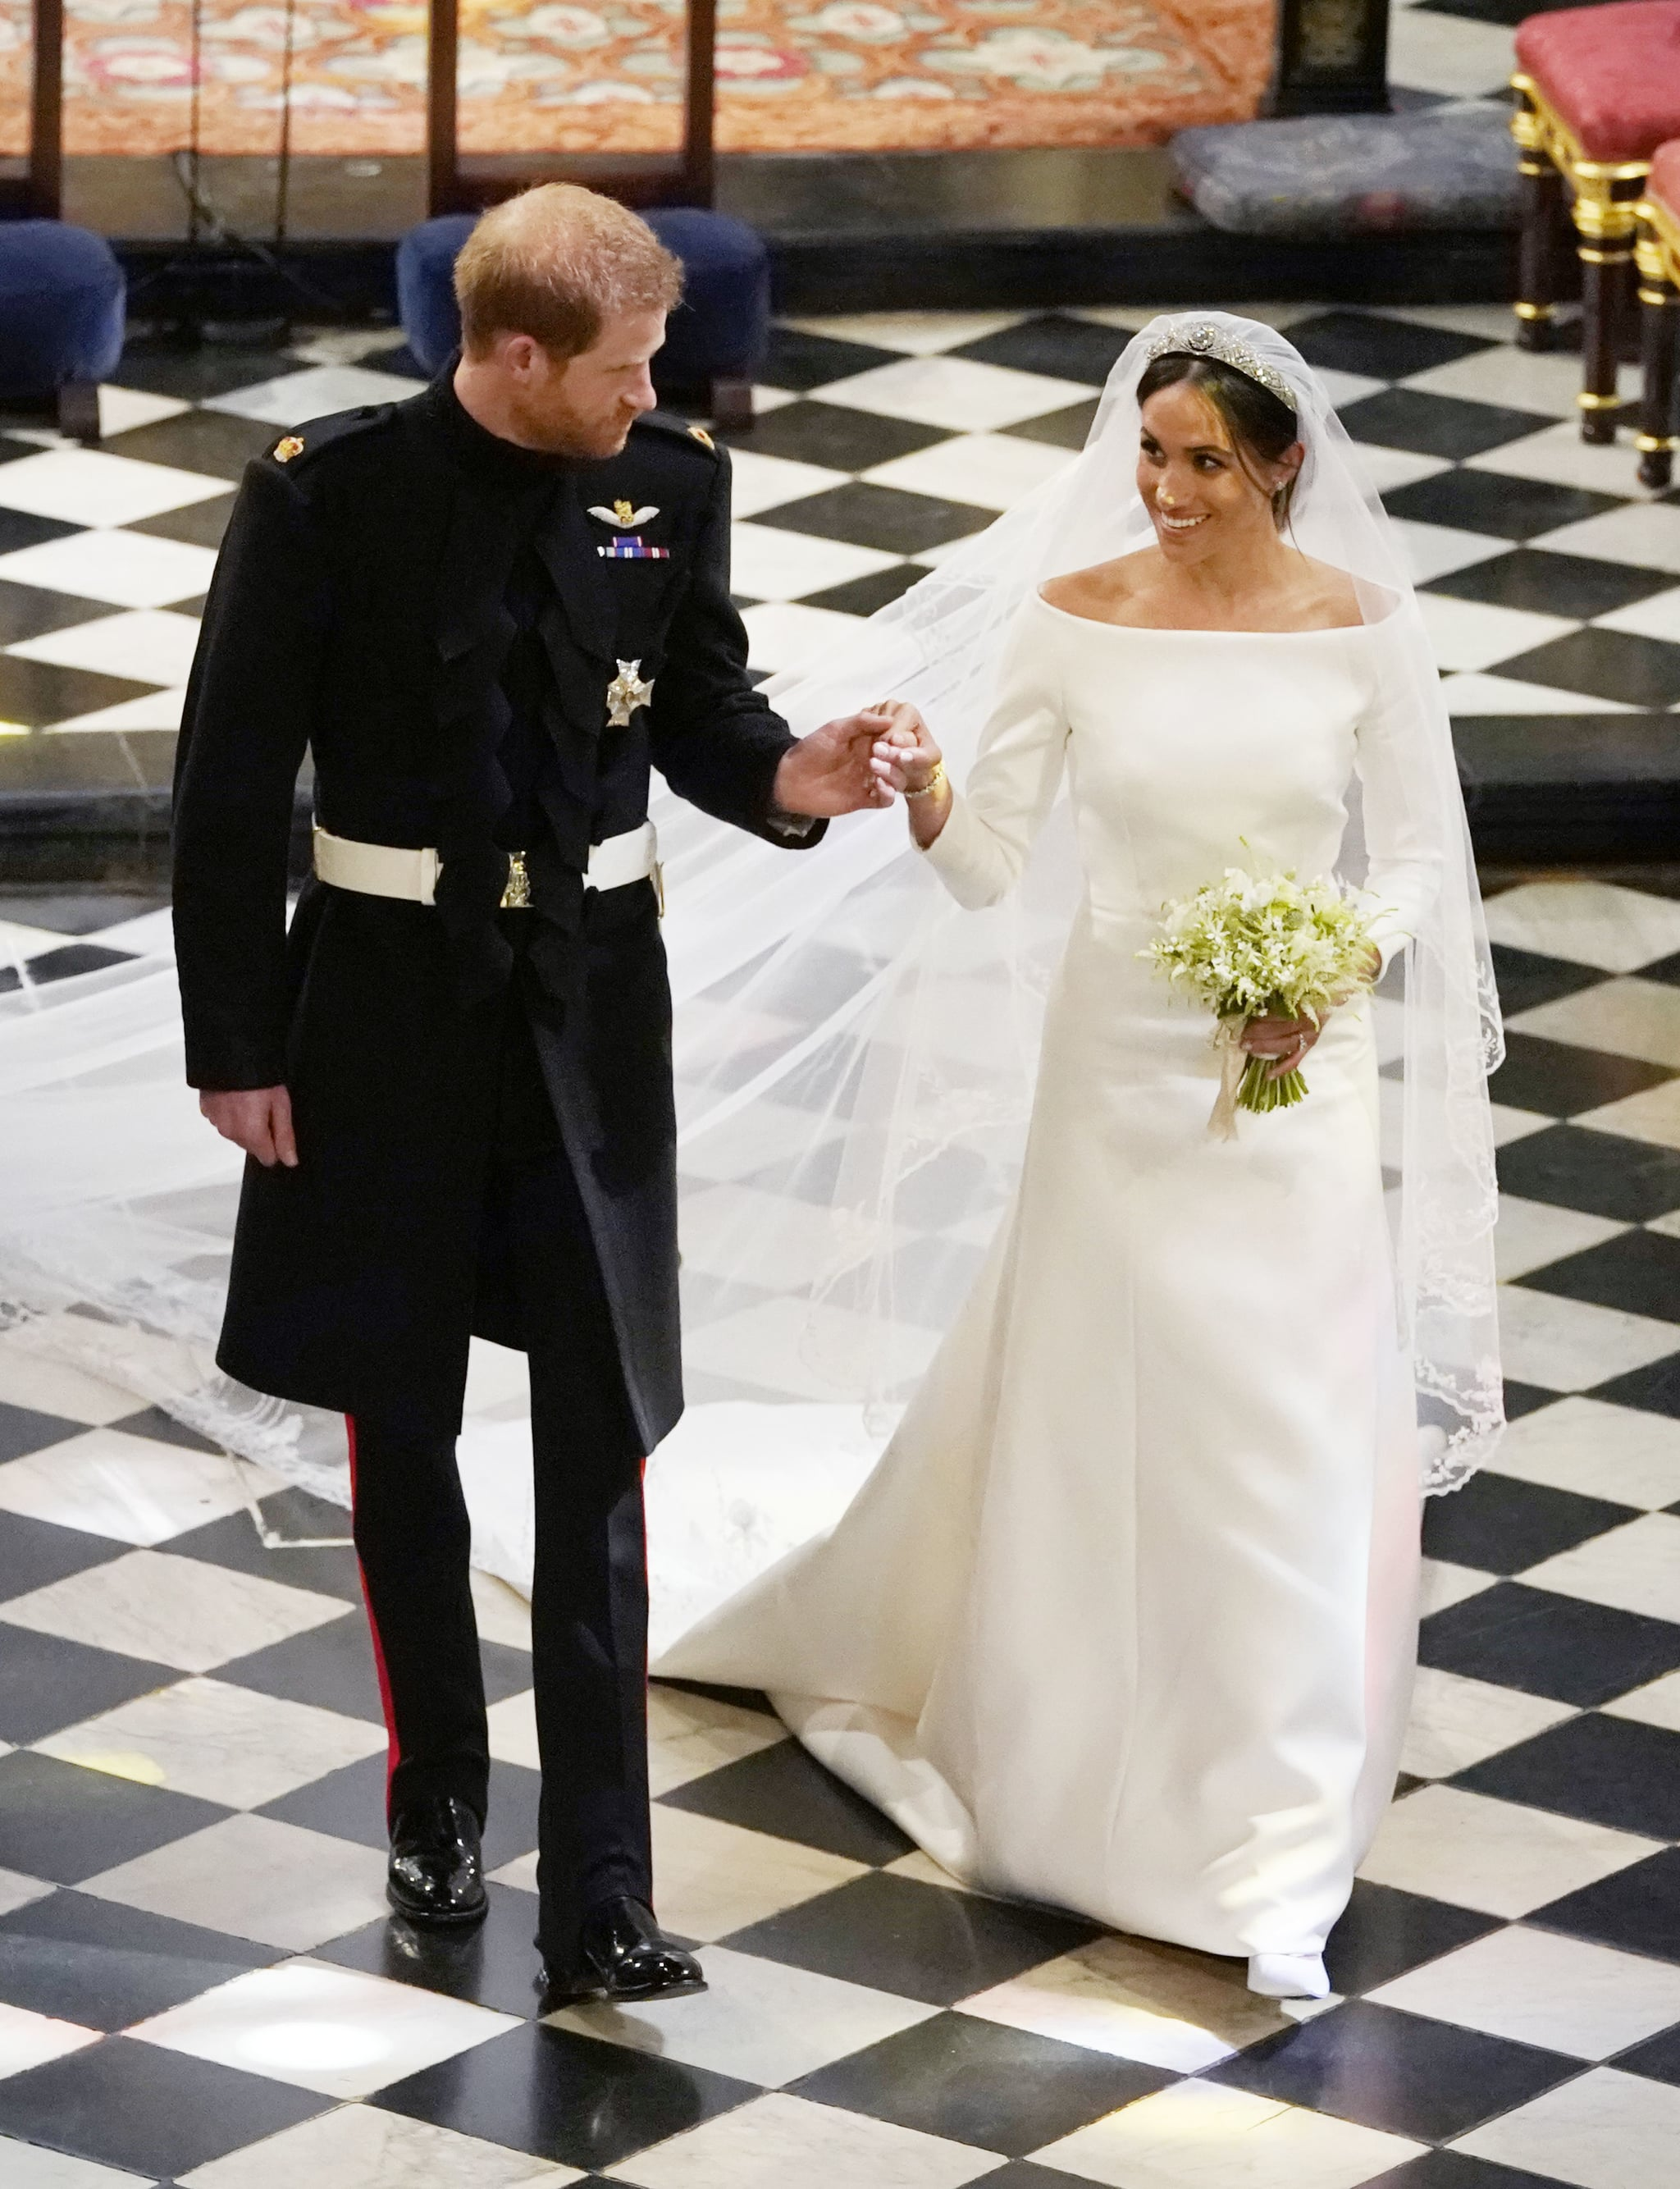 meghan markle and prince harry on their wedding day meghan markle s wedding dress designer shares what it s really like working with the duchess popsugar fashion photo 2 meghan markle and prince harry on their